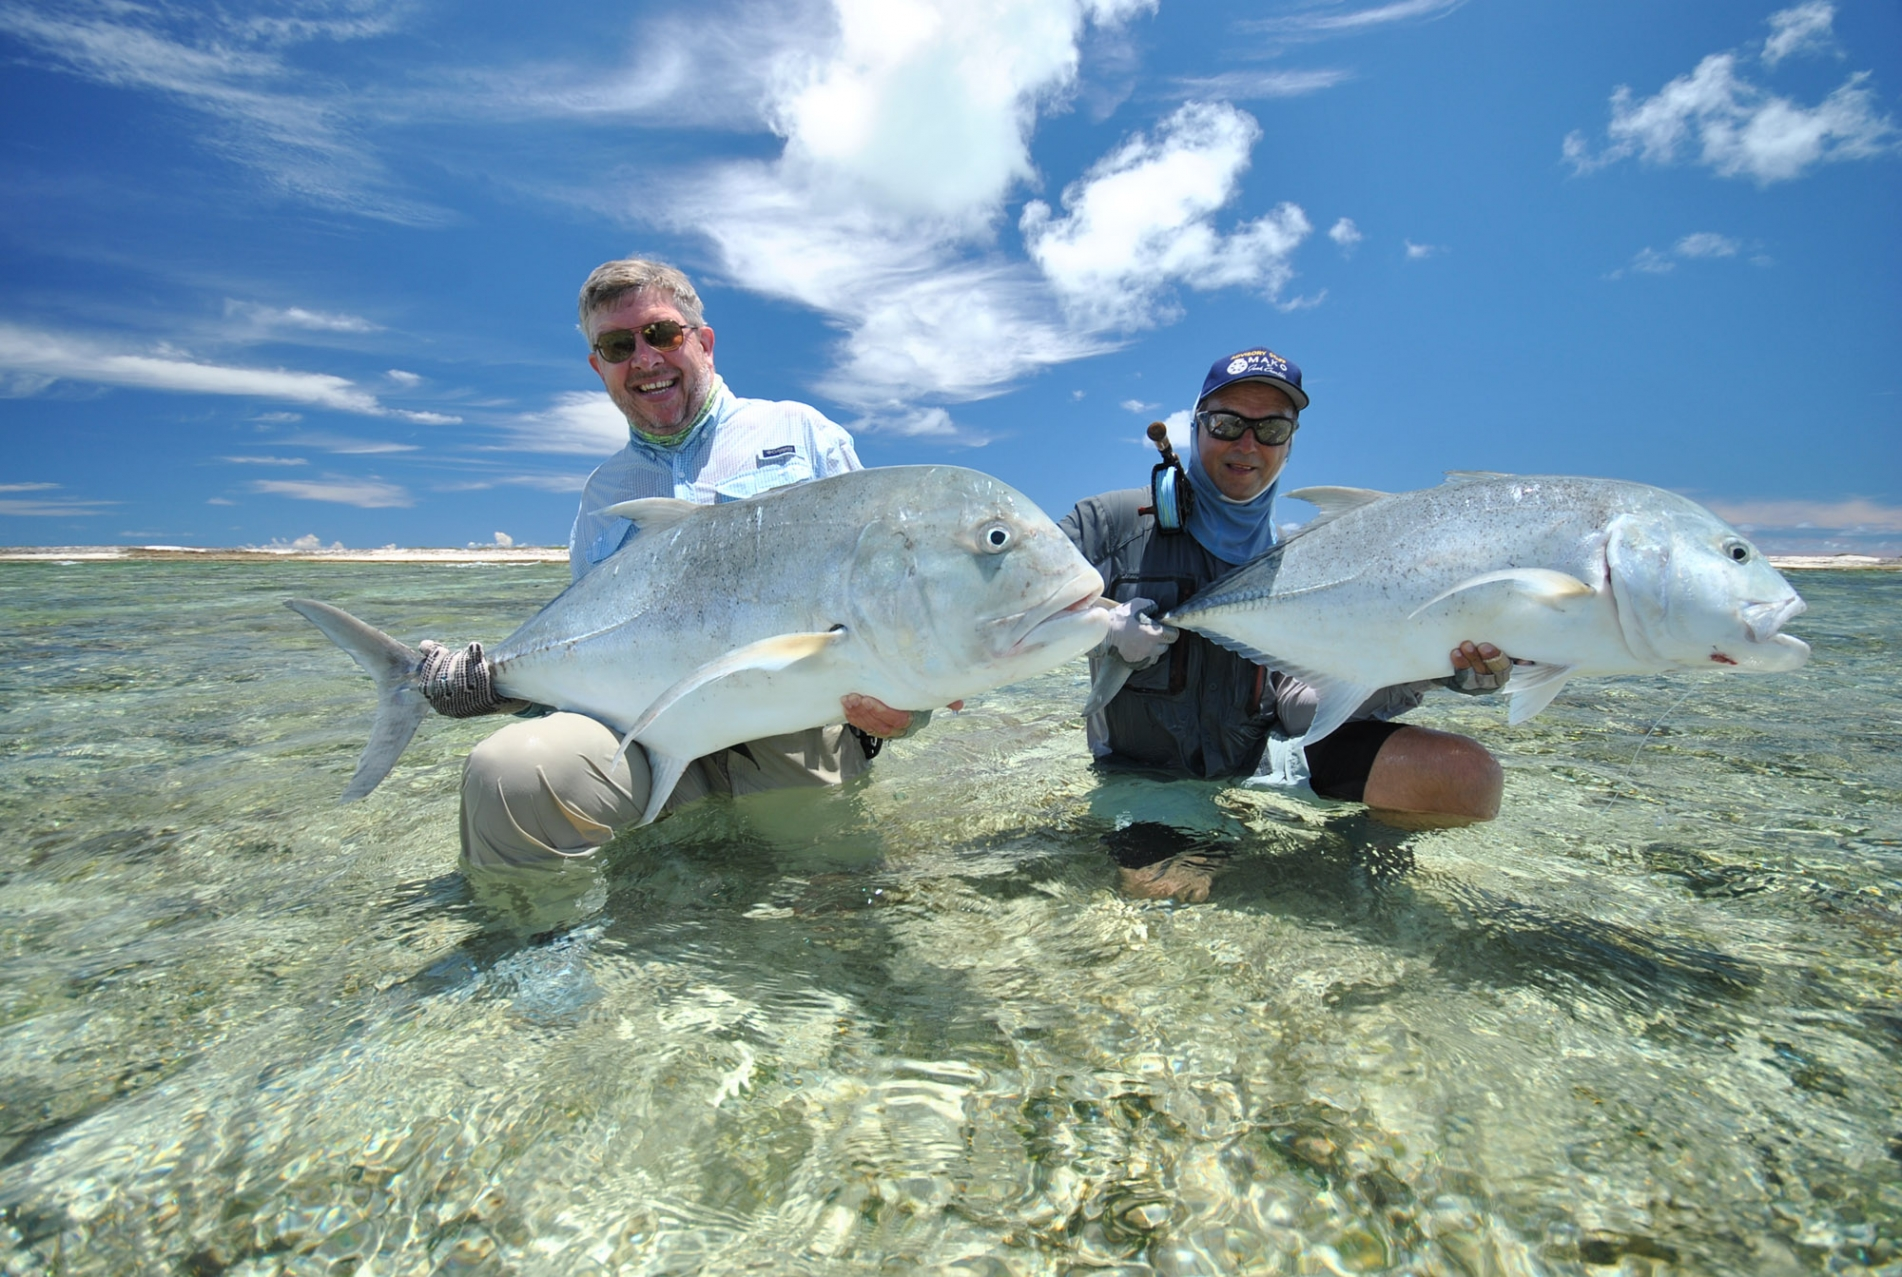 676a0923aa4 Astove Atoll - The home of monster flats caught Giant Trevally ...